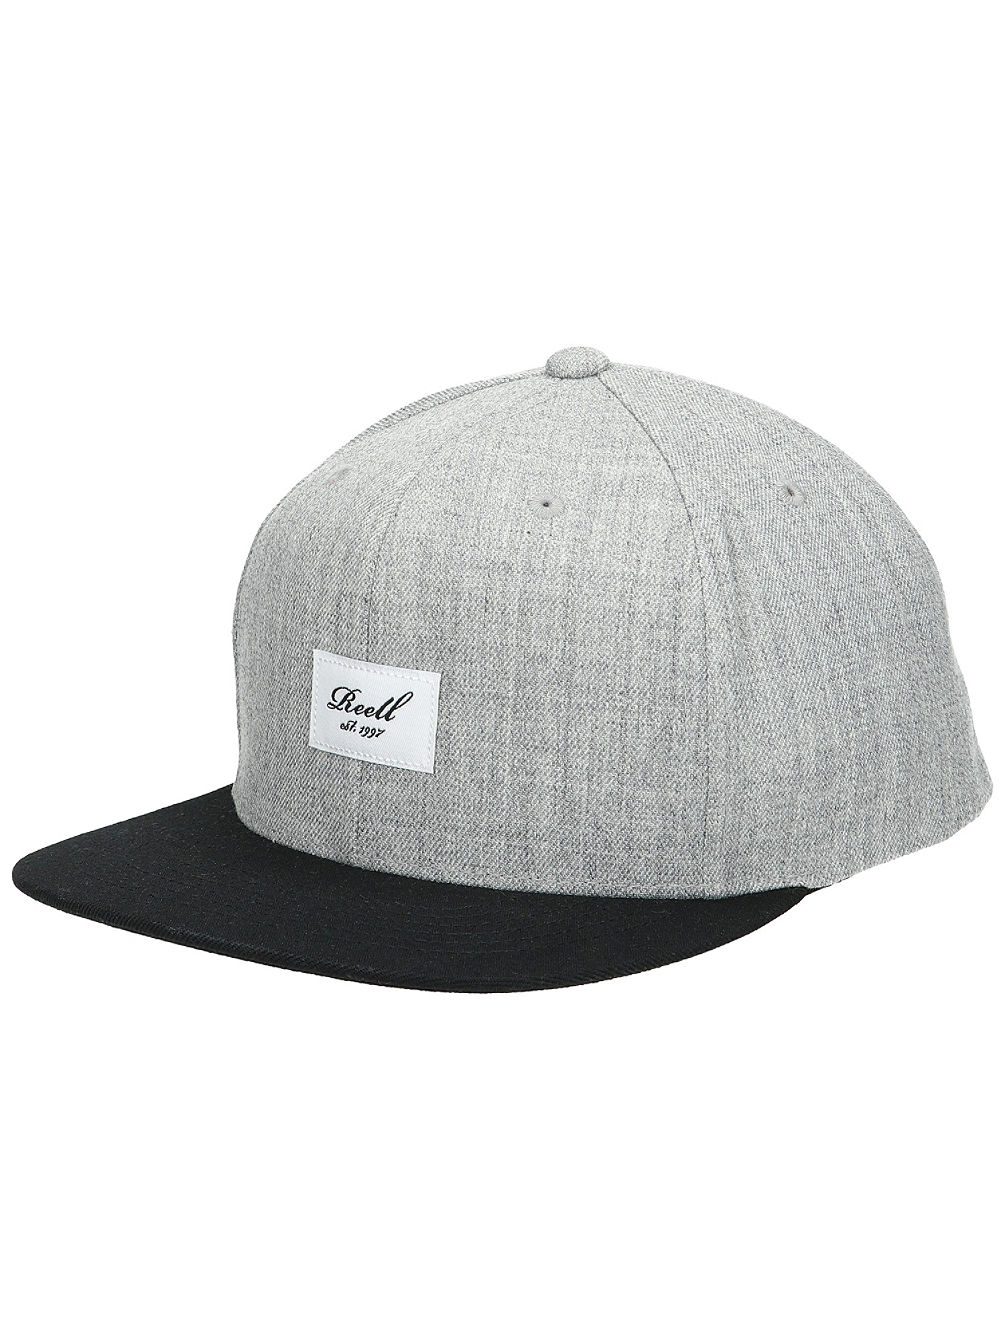 Pitchout 6-Panel Cap